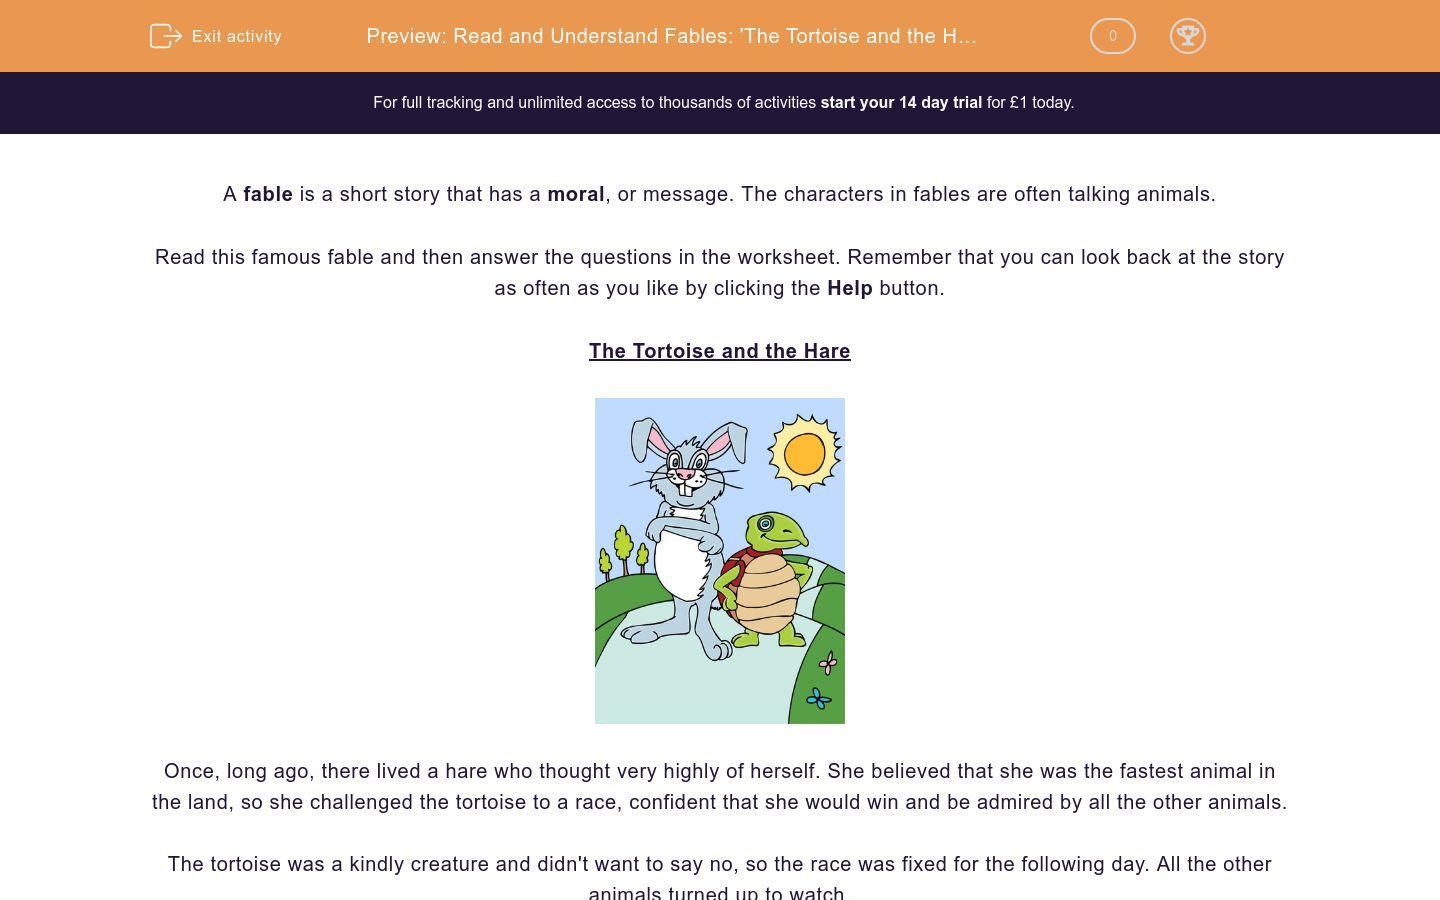 'Read and Understand Fables: 'The Tortoise and the Hare'' worksheet